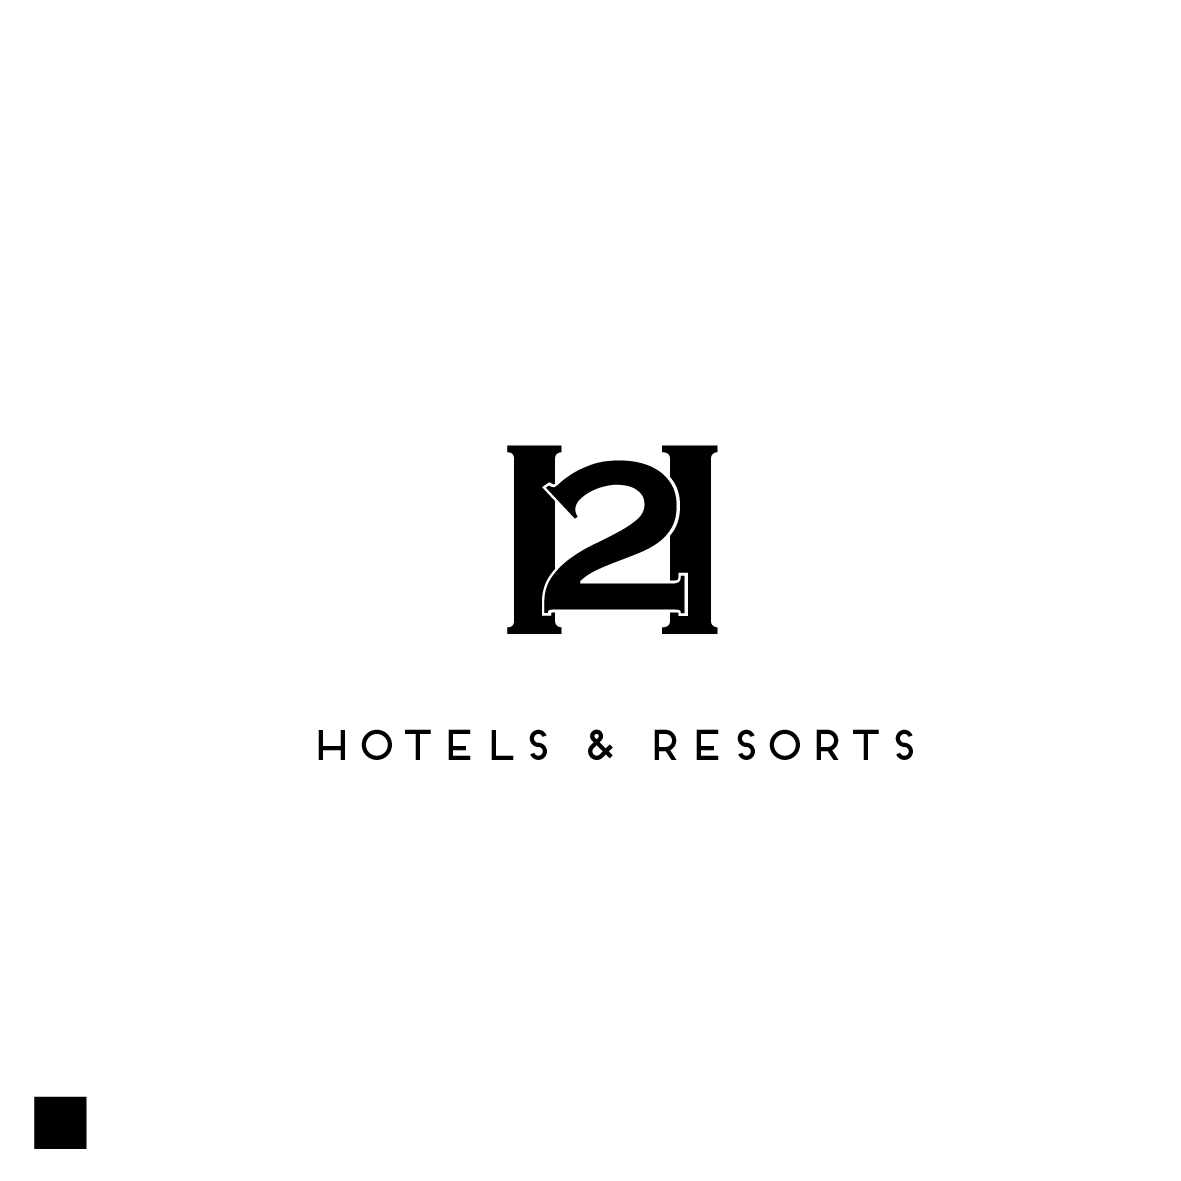 professional, serious, hotel logo design for h2 by chynthiadewi91